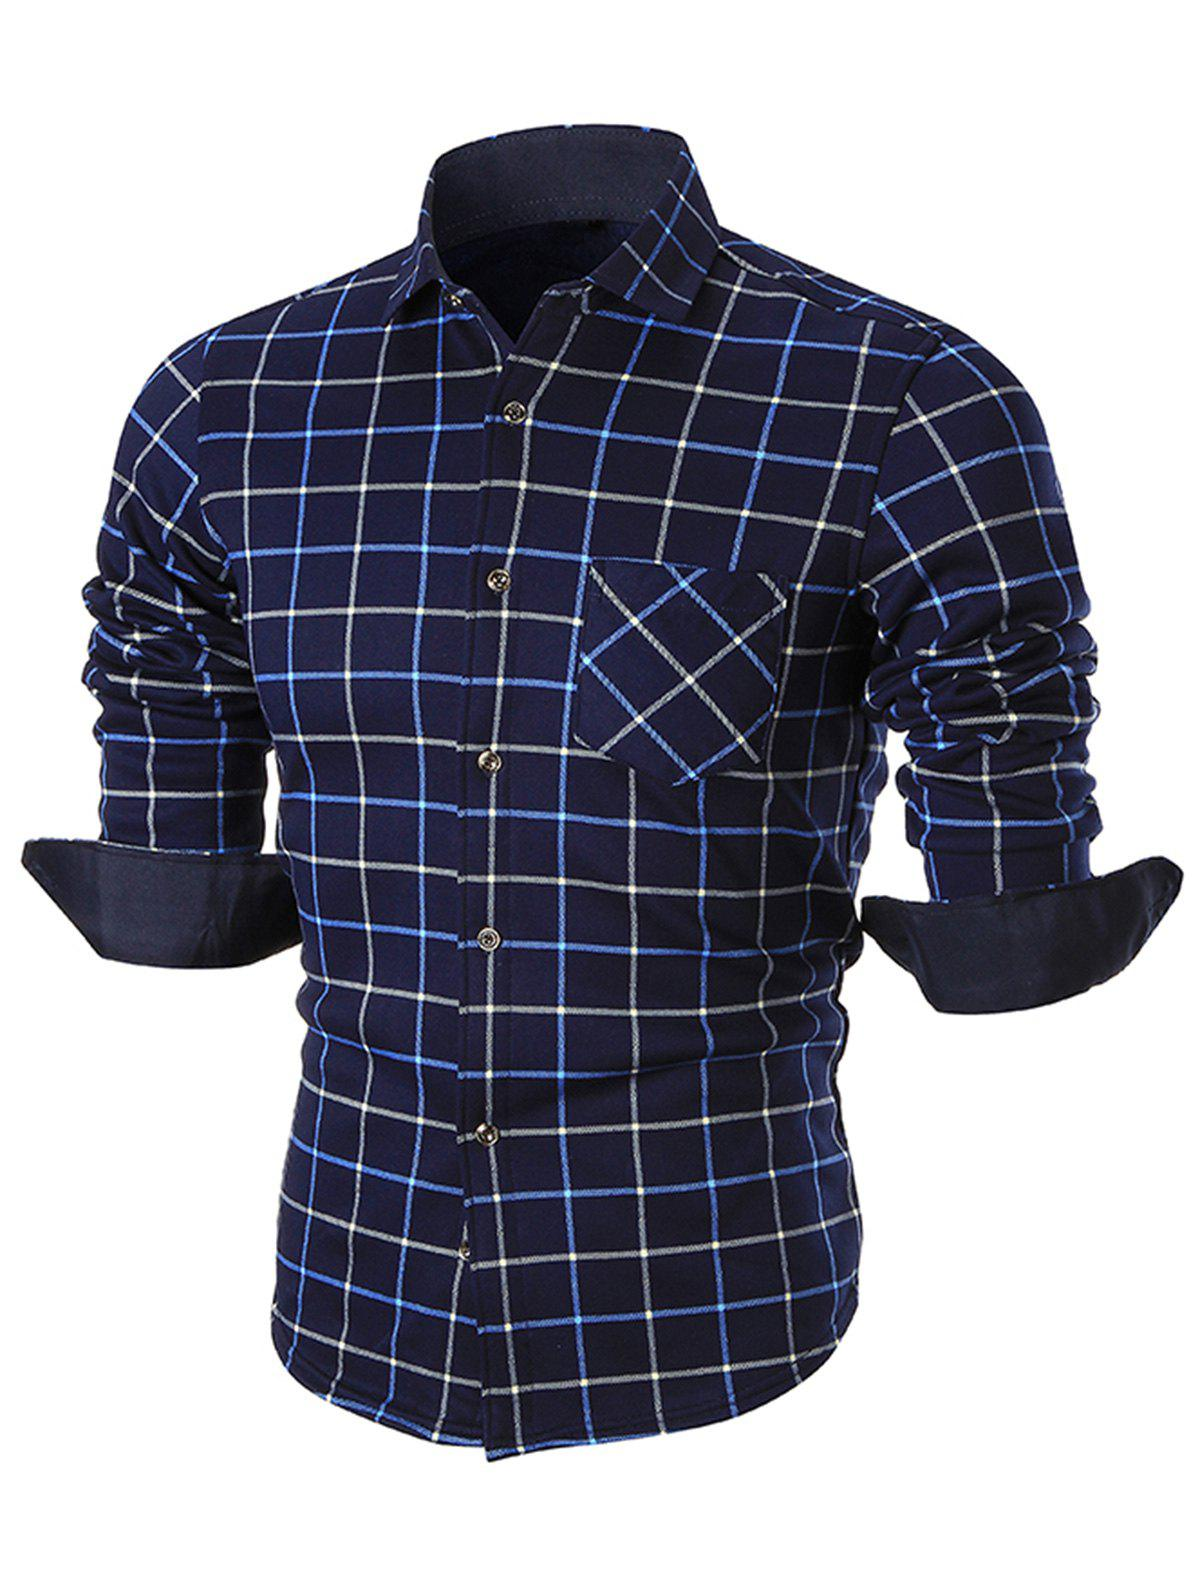 Buy Plush-lined Pocket Checkered Long Sleeve Shirt